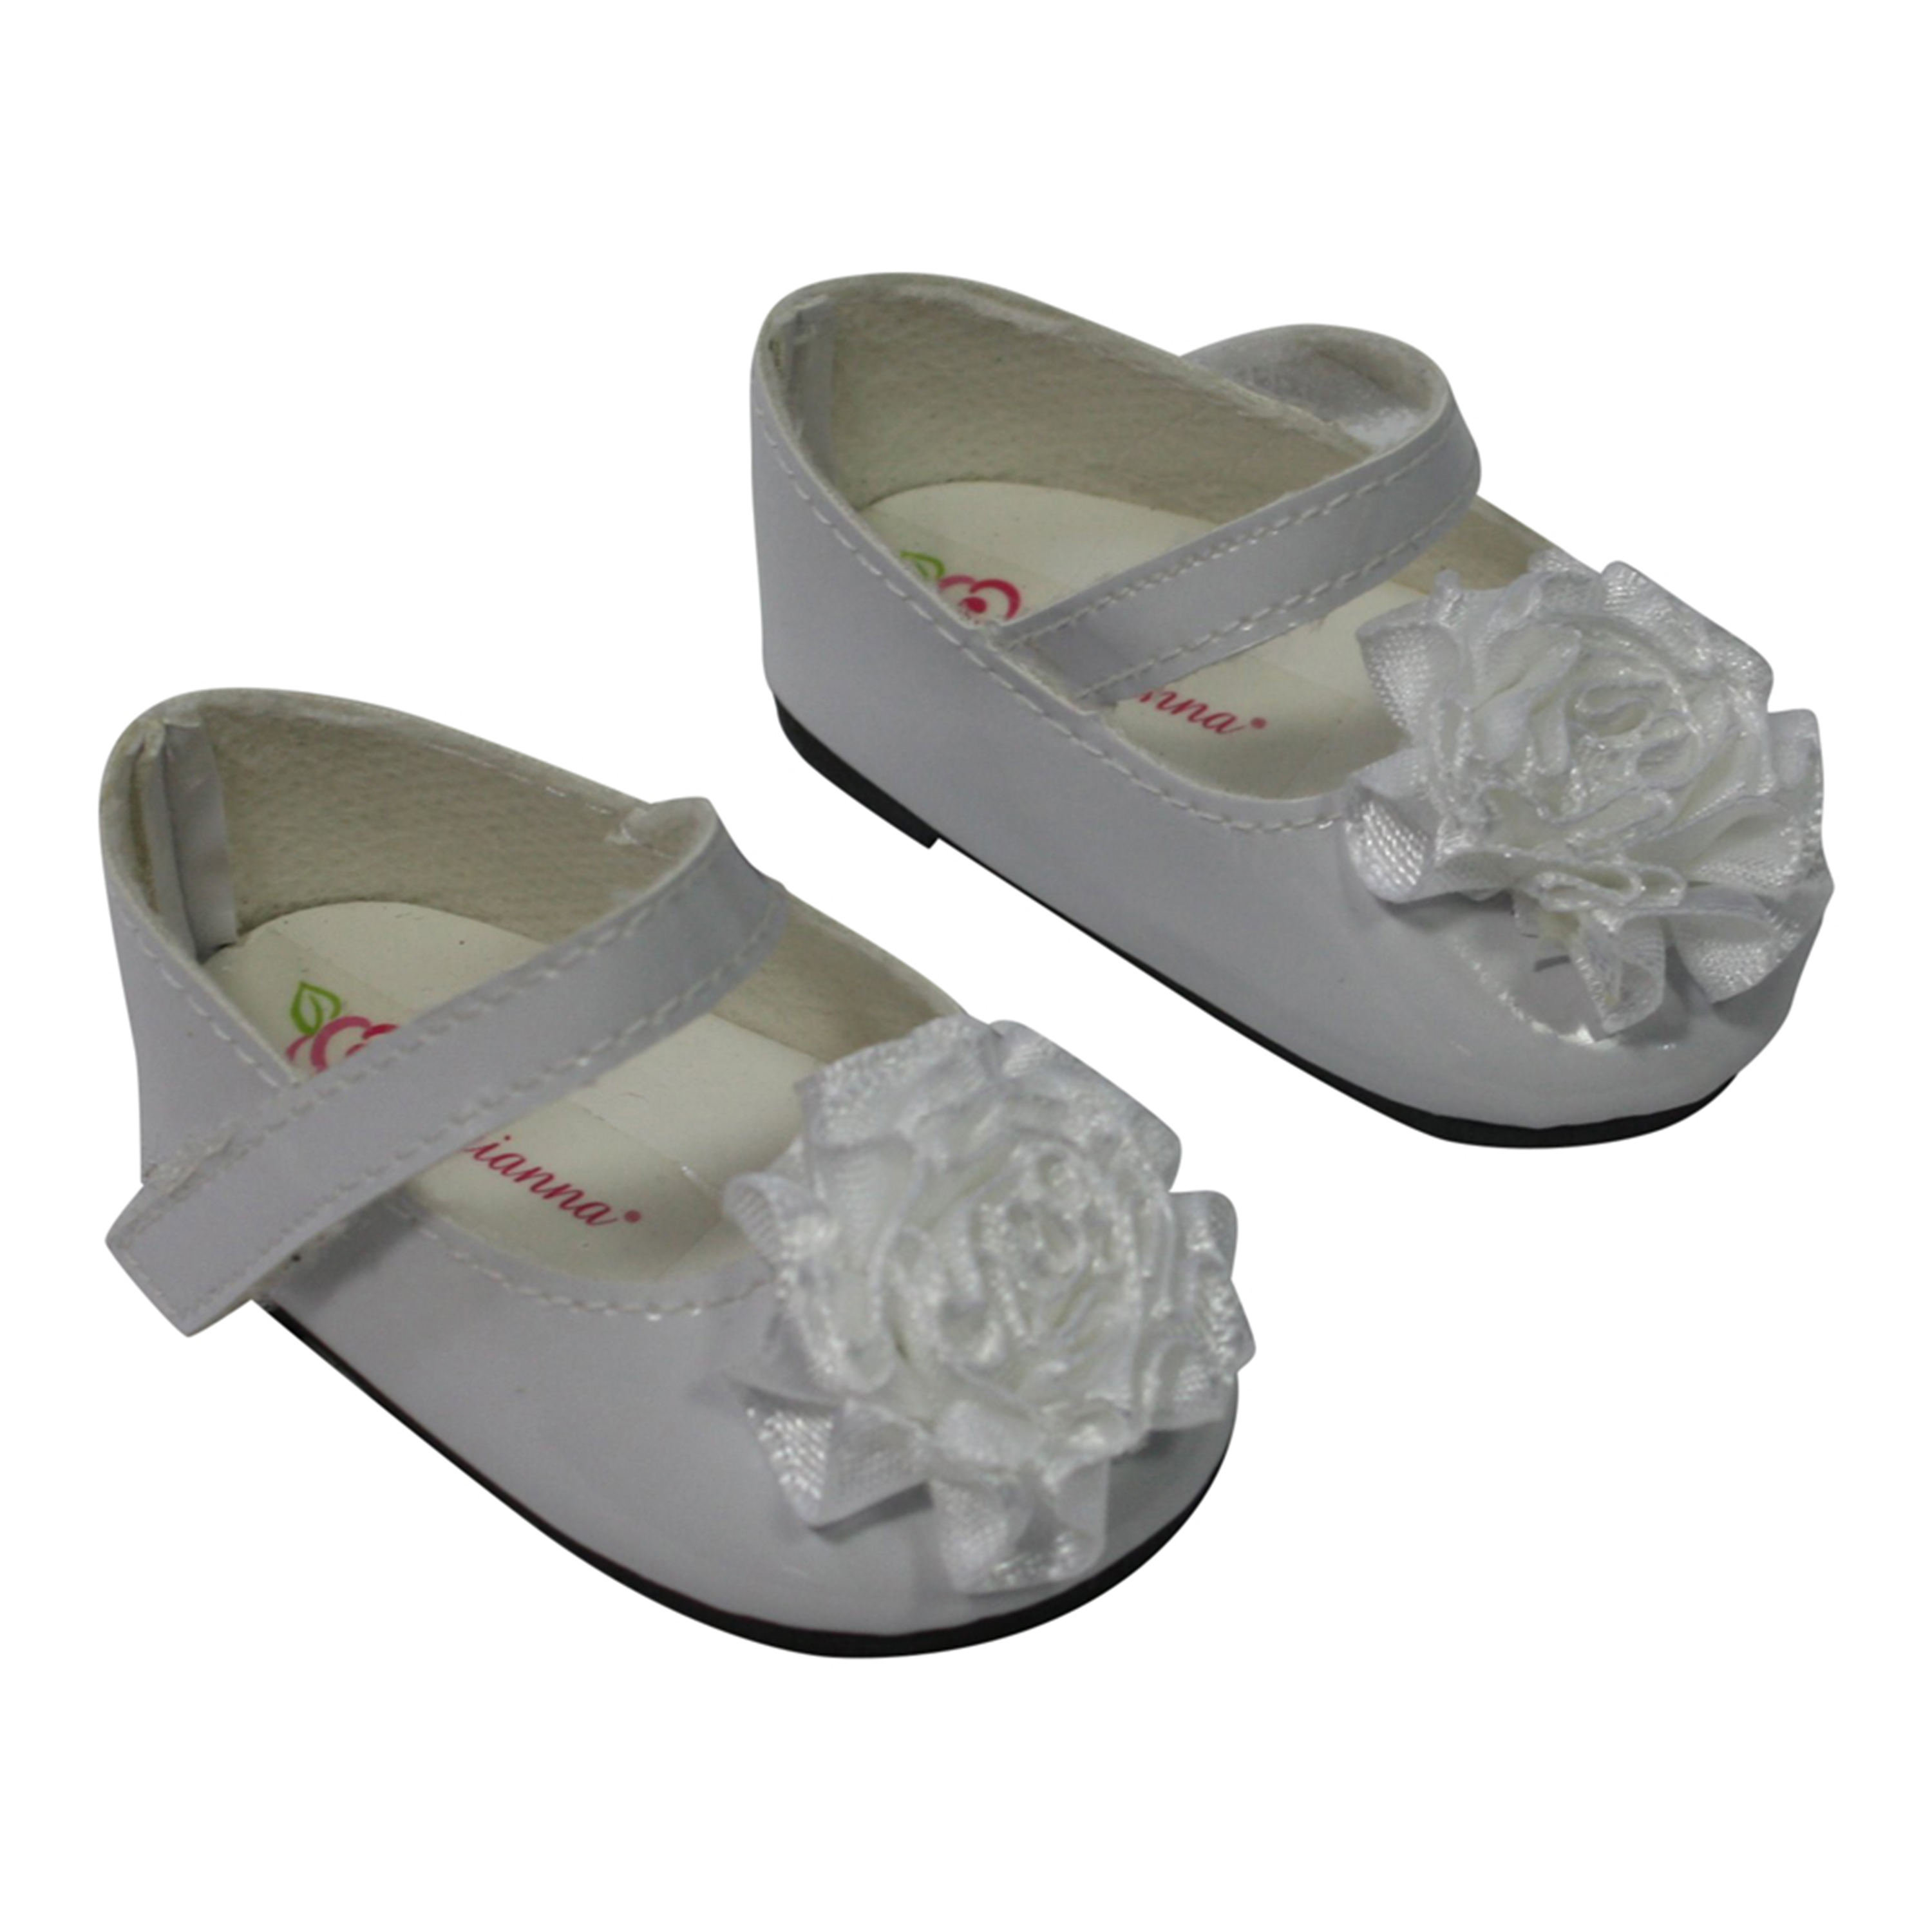 Arianna White Chiffon Flower Mary Jane Dress Shoes Fits American Girl 18 Inch Doll